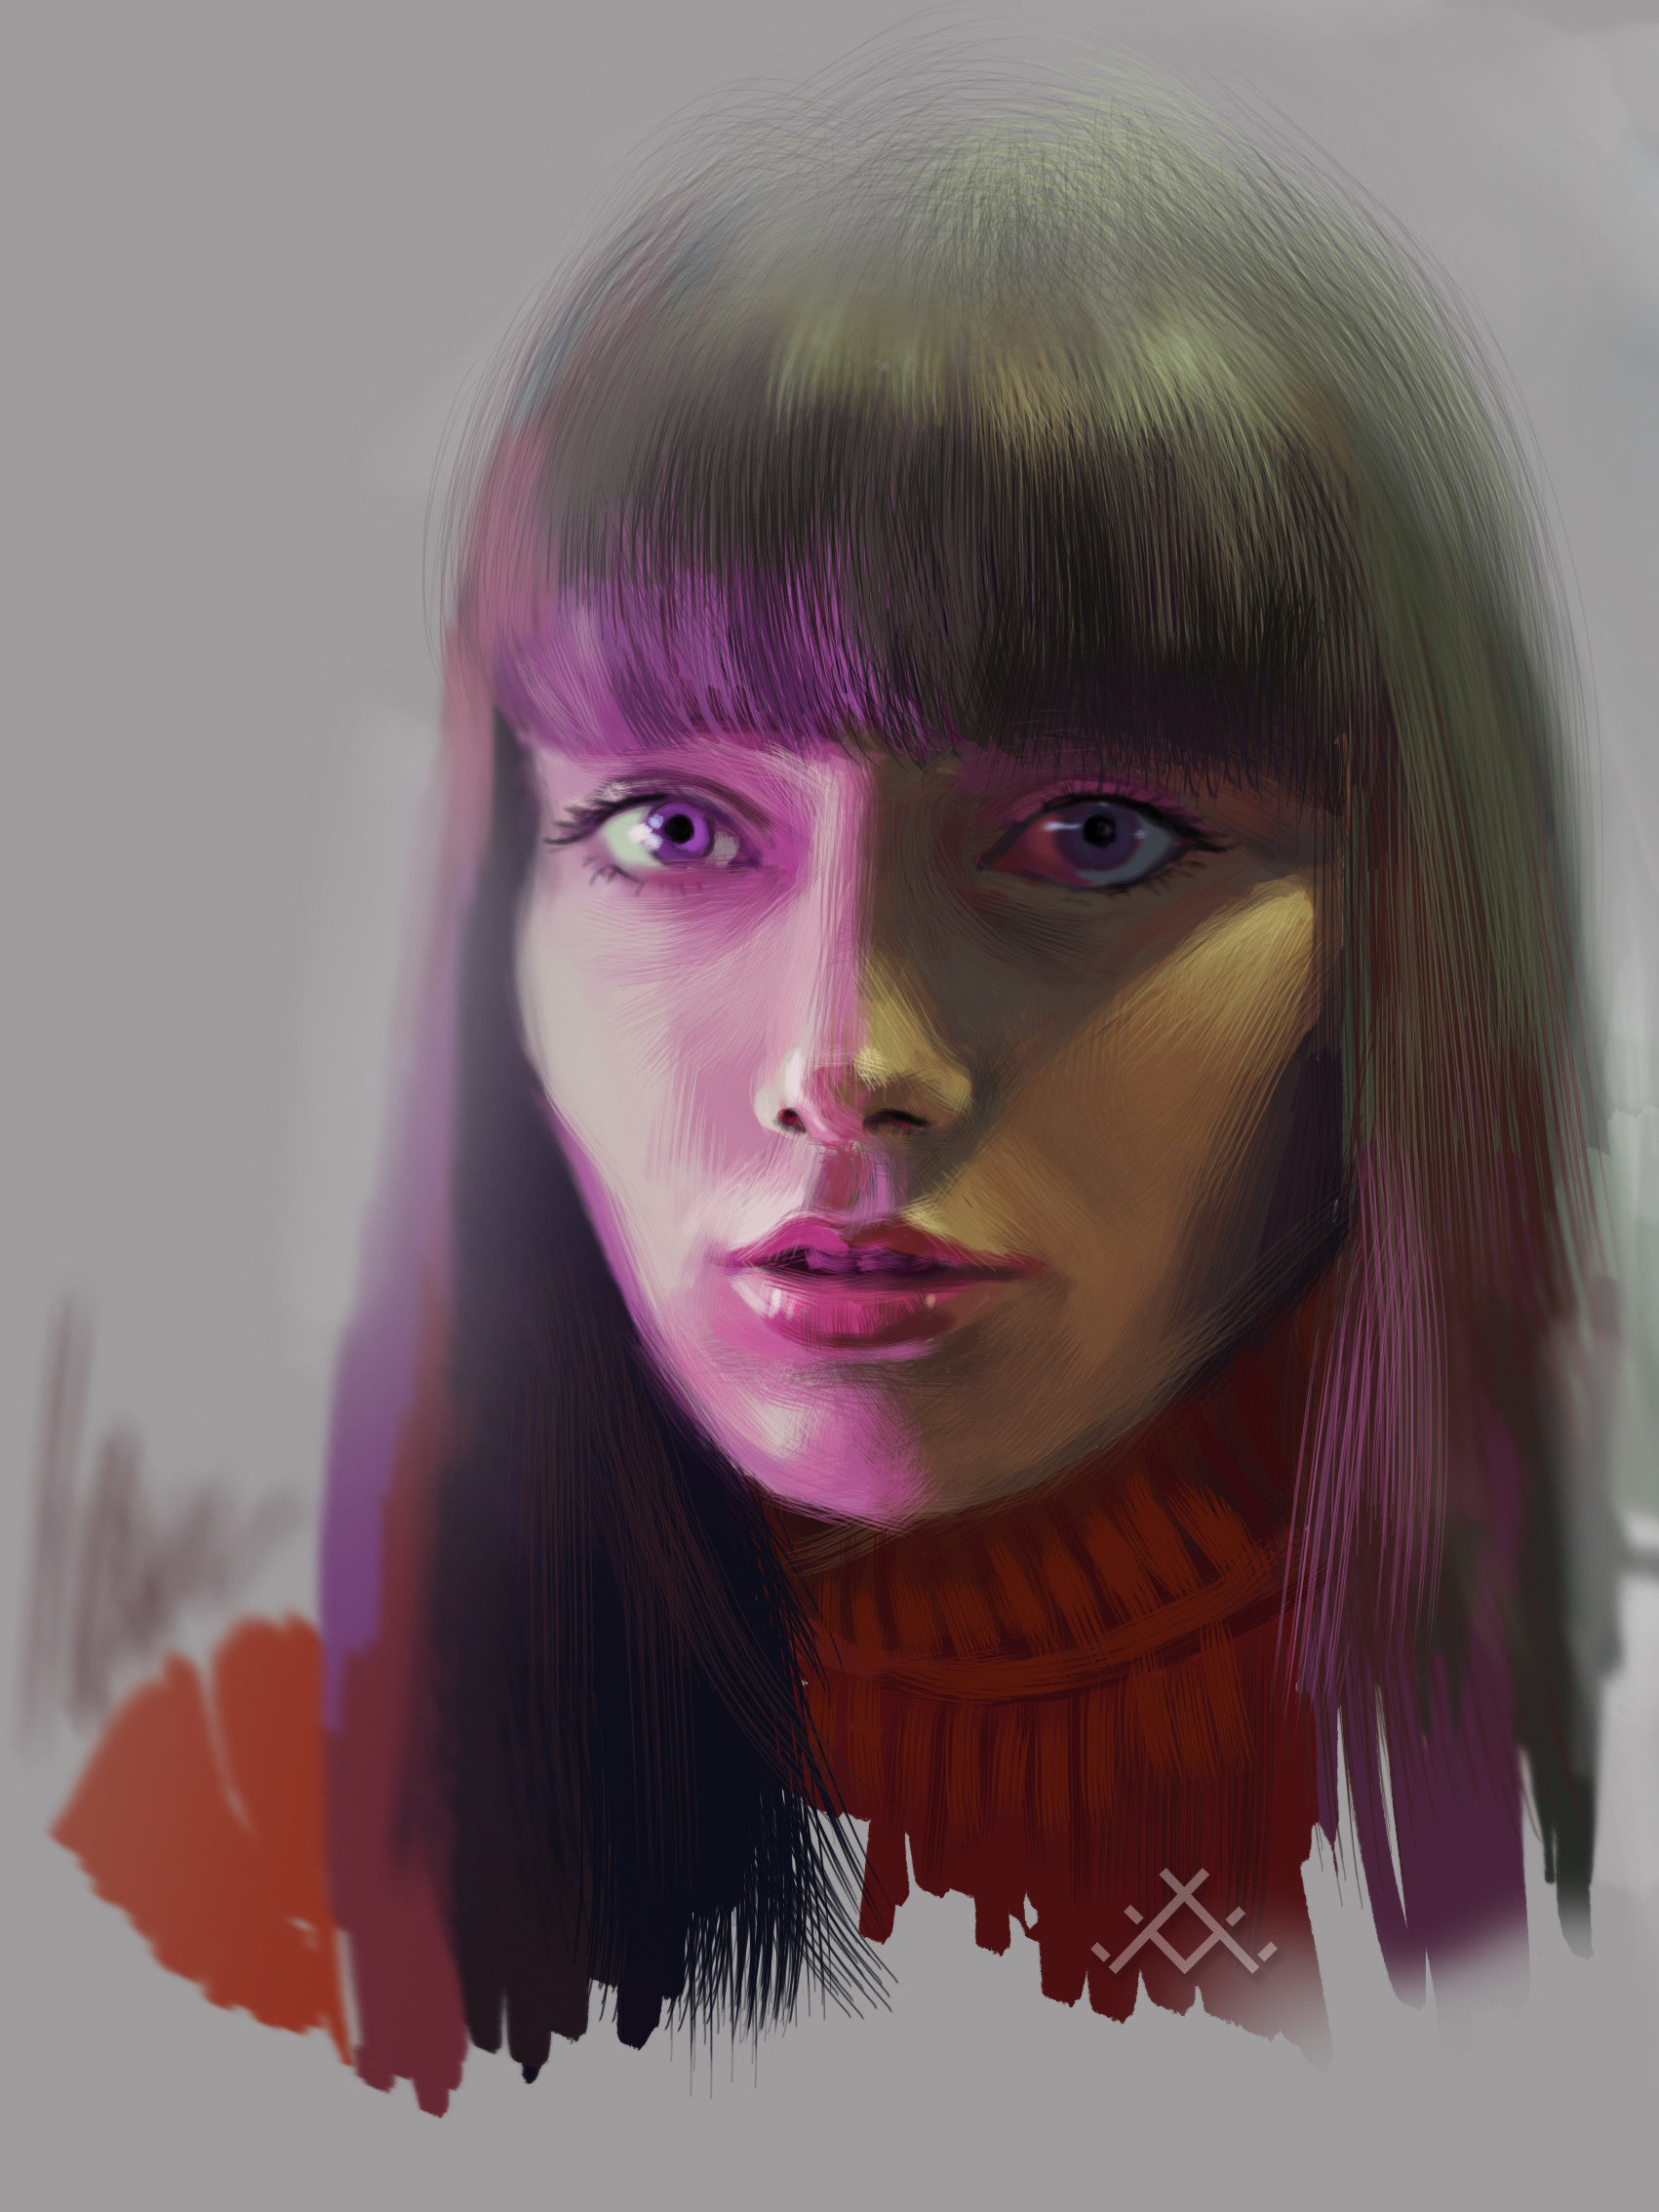 drawing a girl from a photo